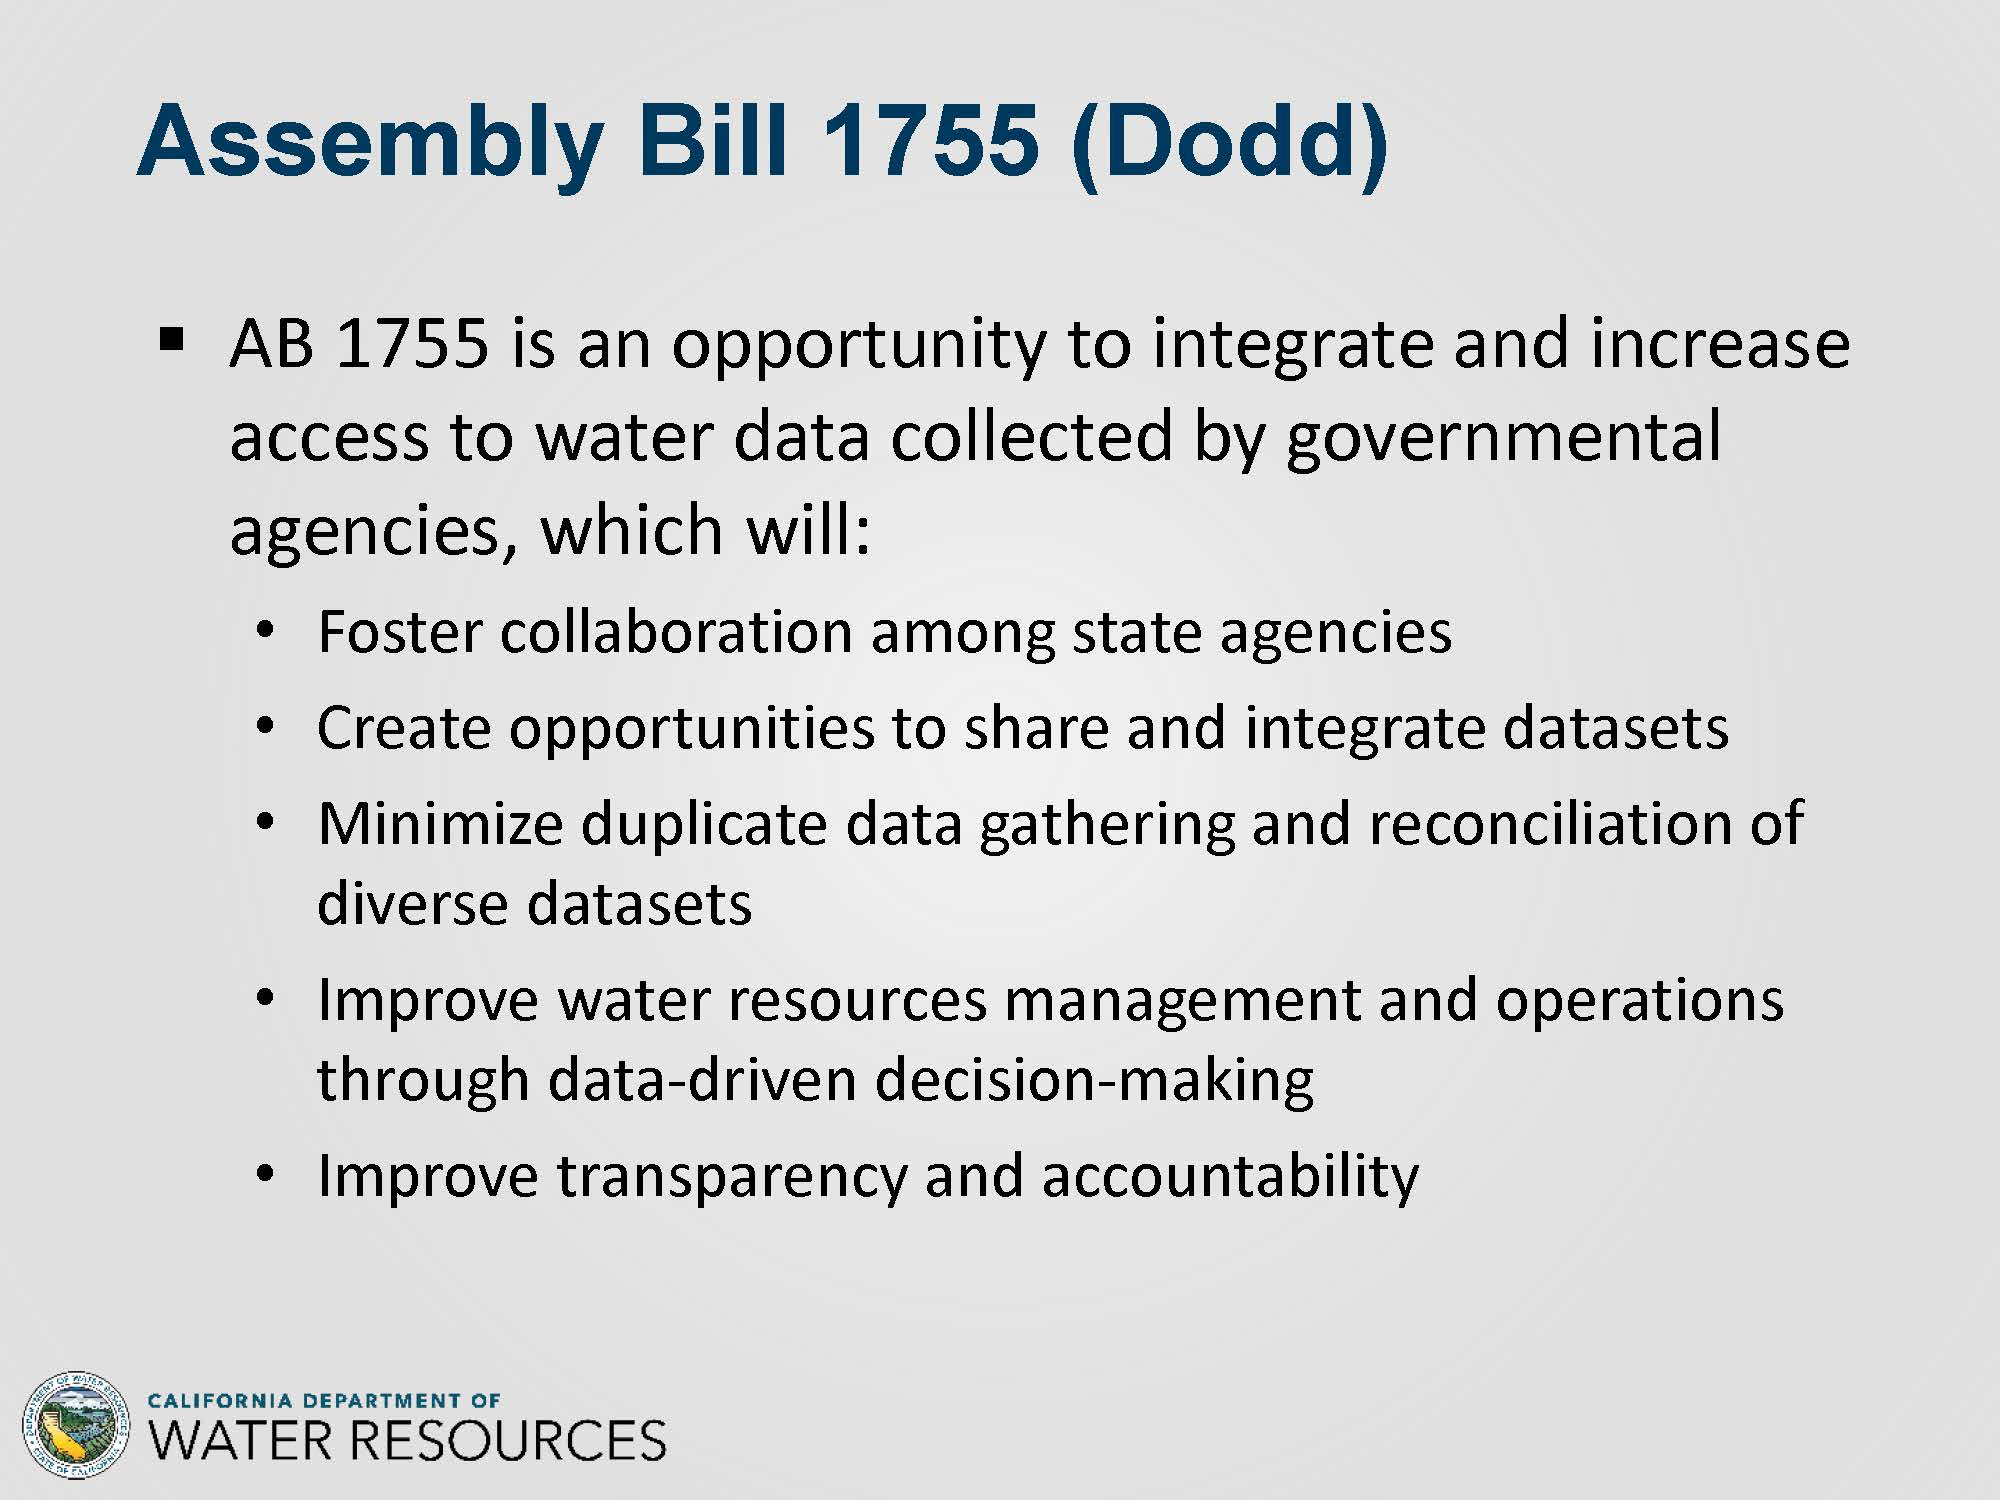 CA WATER COMMISSION: Implementing AB 1755: The Open and